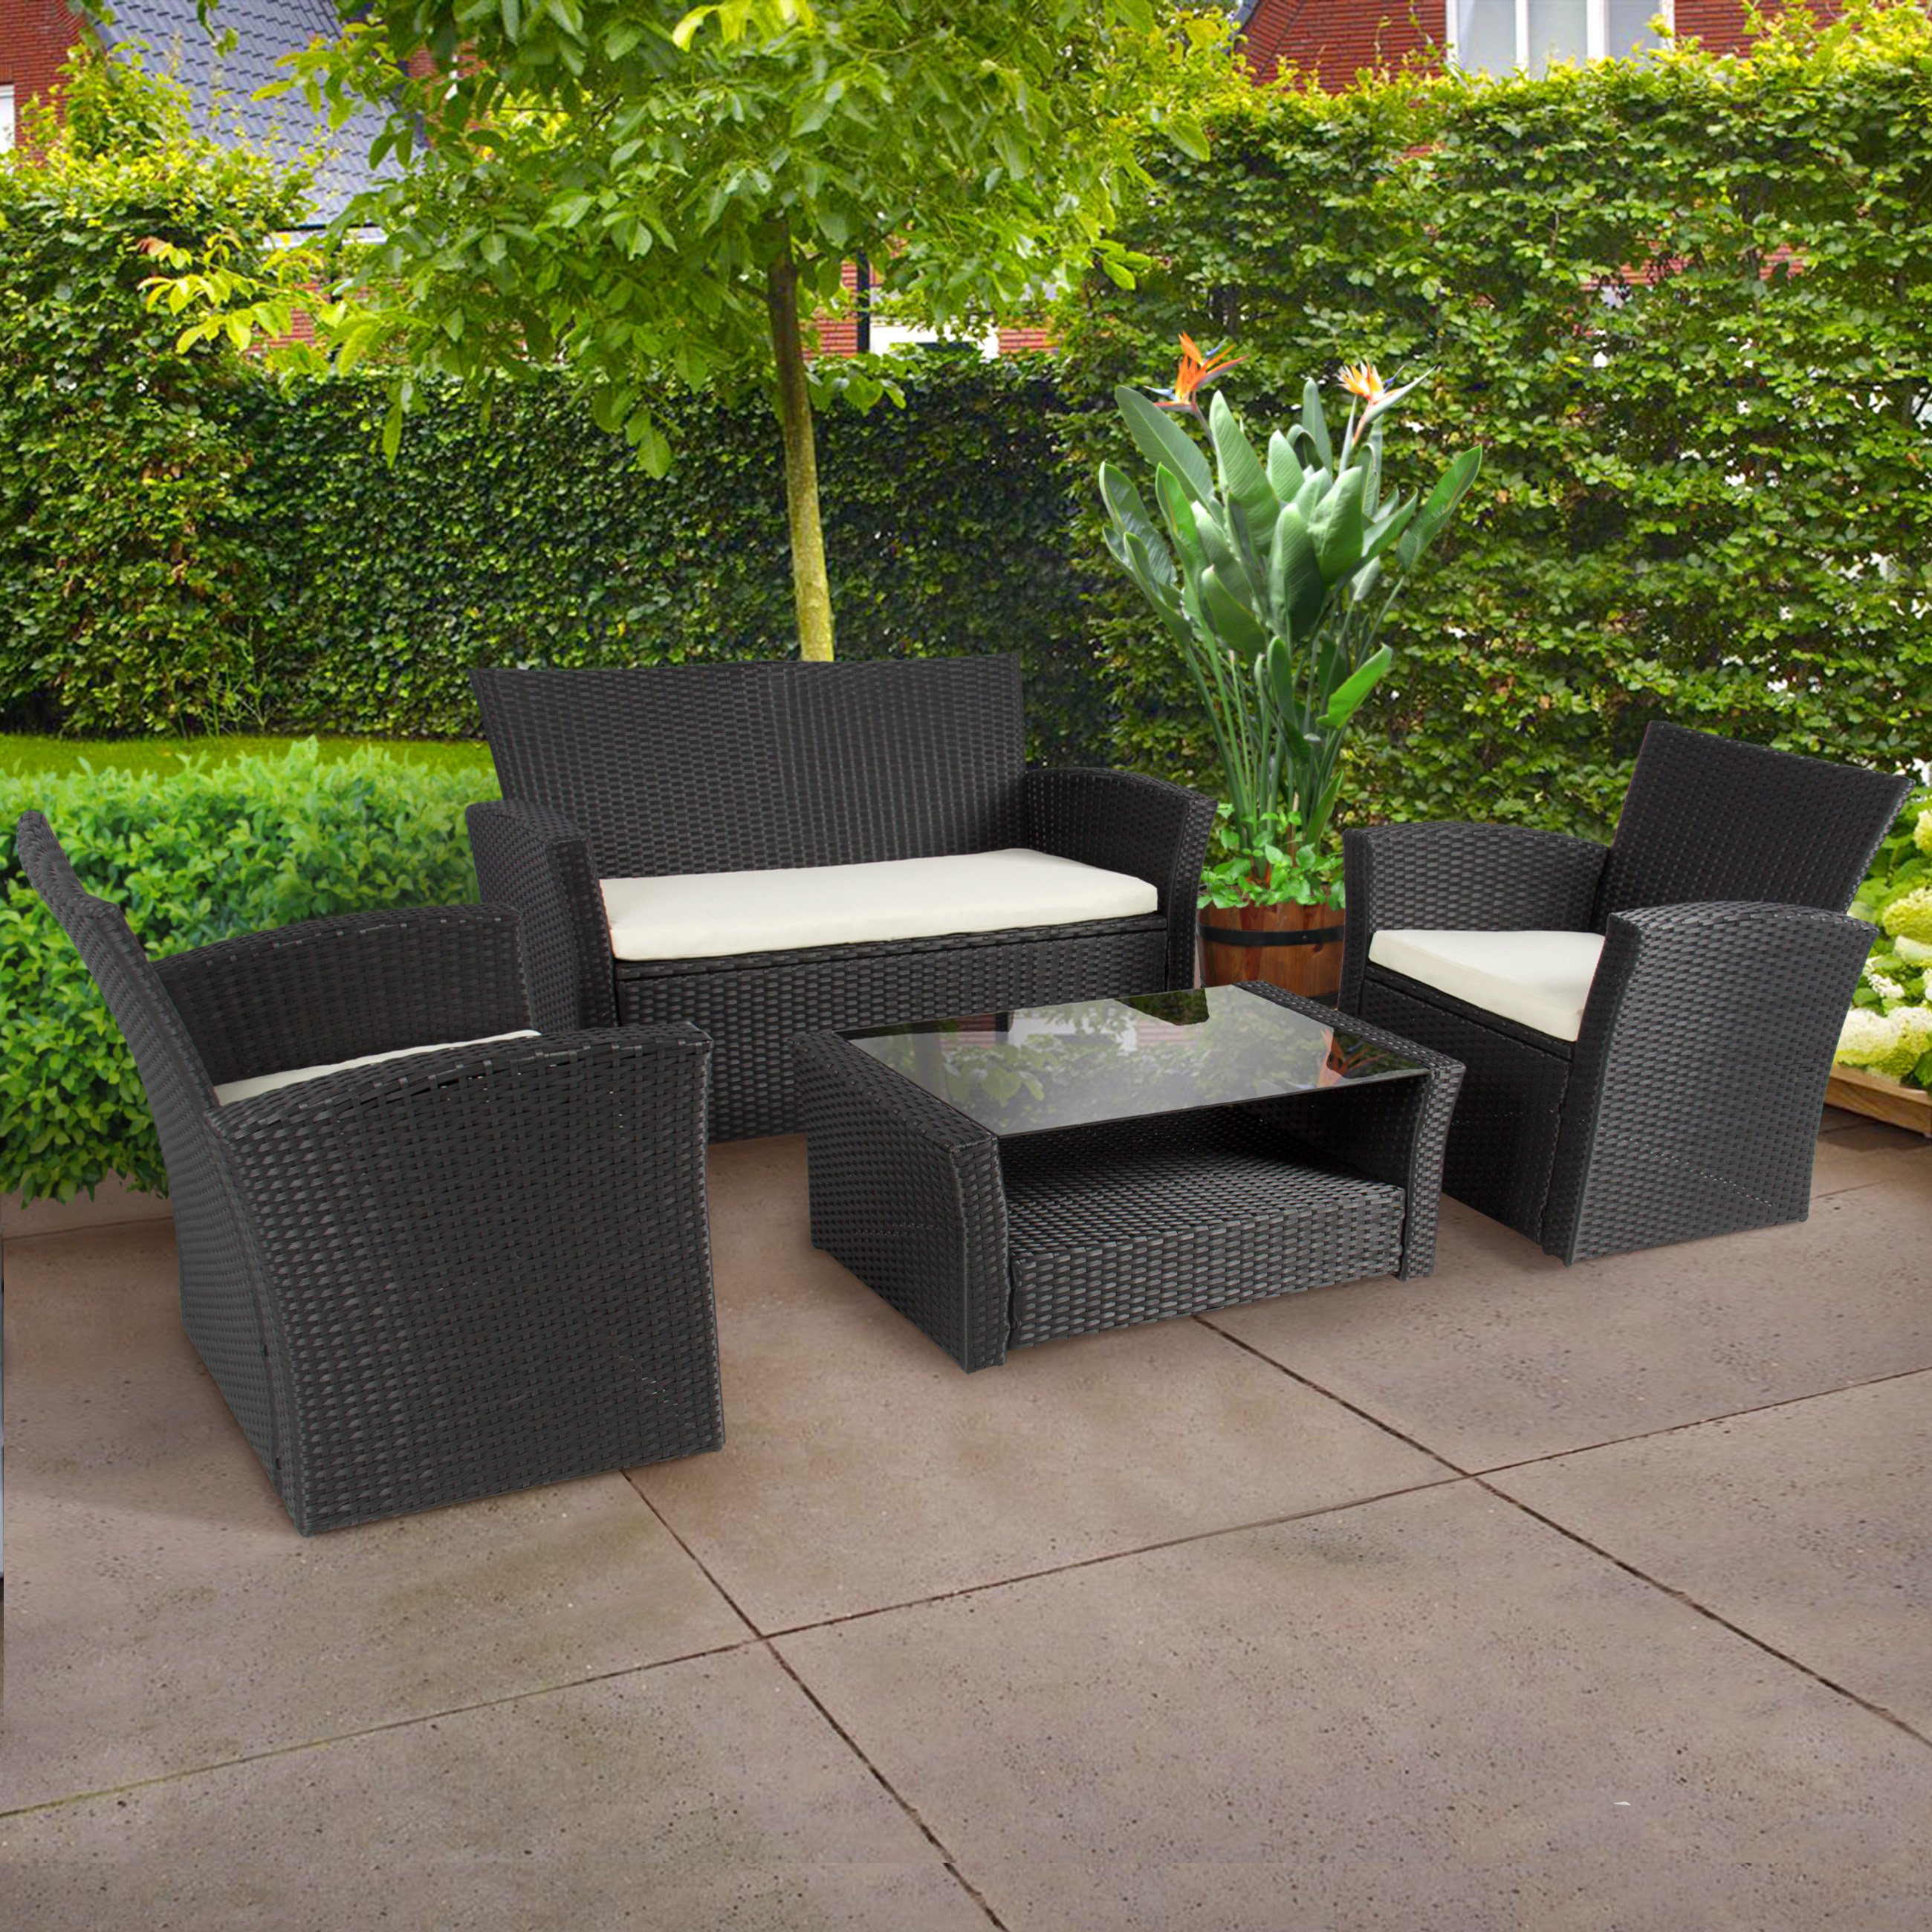 garden sets 4pc outdoor patio garden furniture wicker rattan sofa set black - HLSMRBN